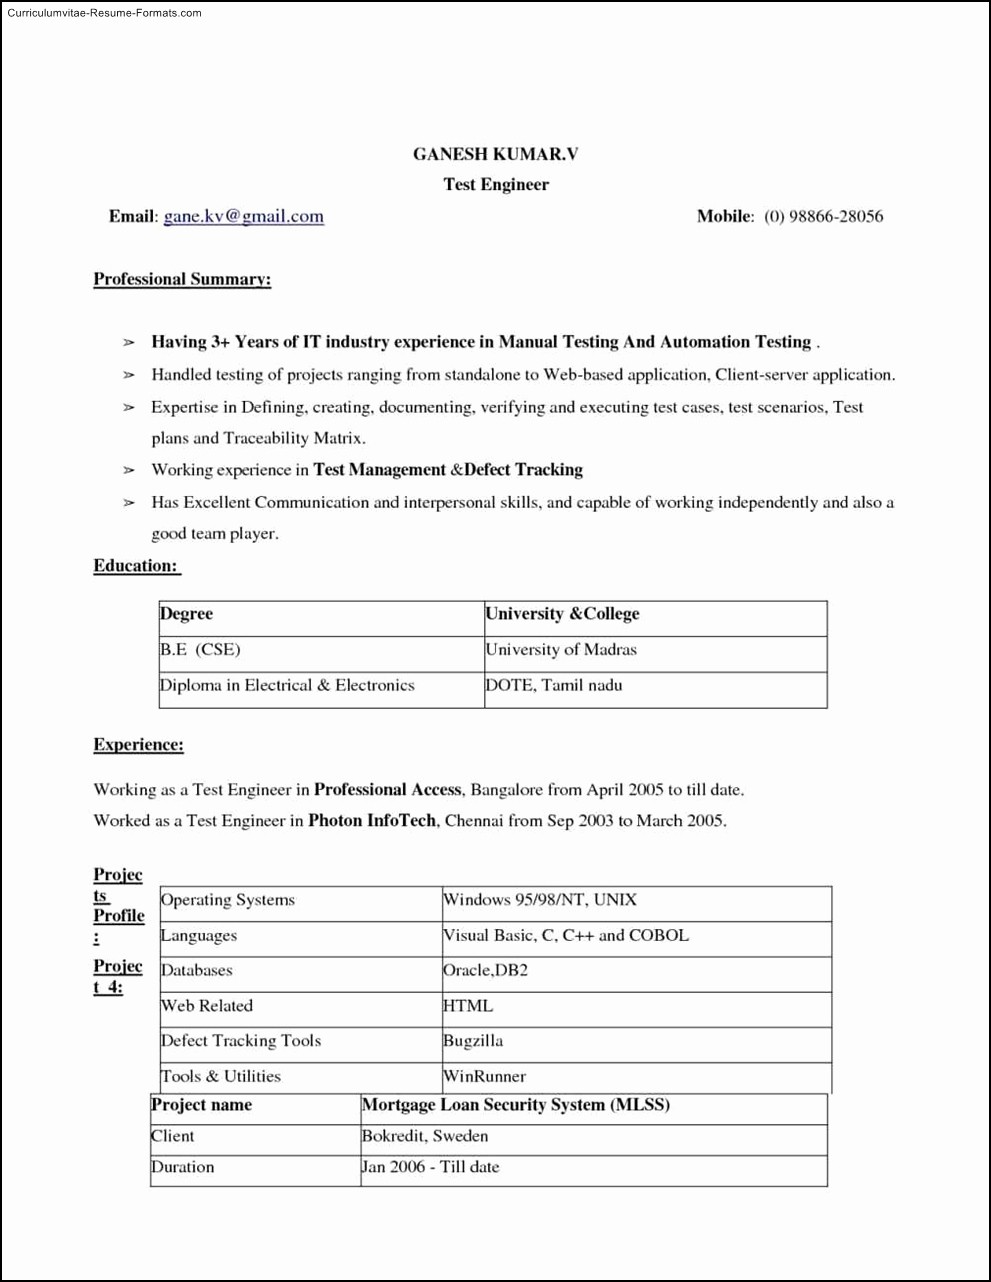 Microsoft Office Resume Templates Downloads Luxury Microsoft Fice Resume Templates Free Download Free